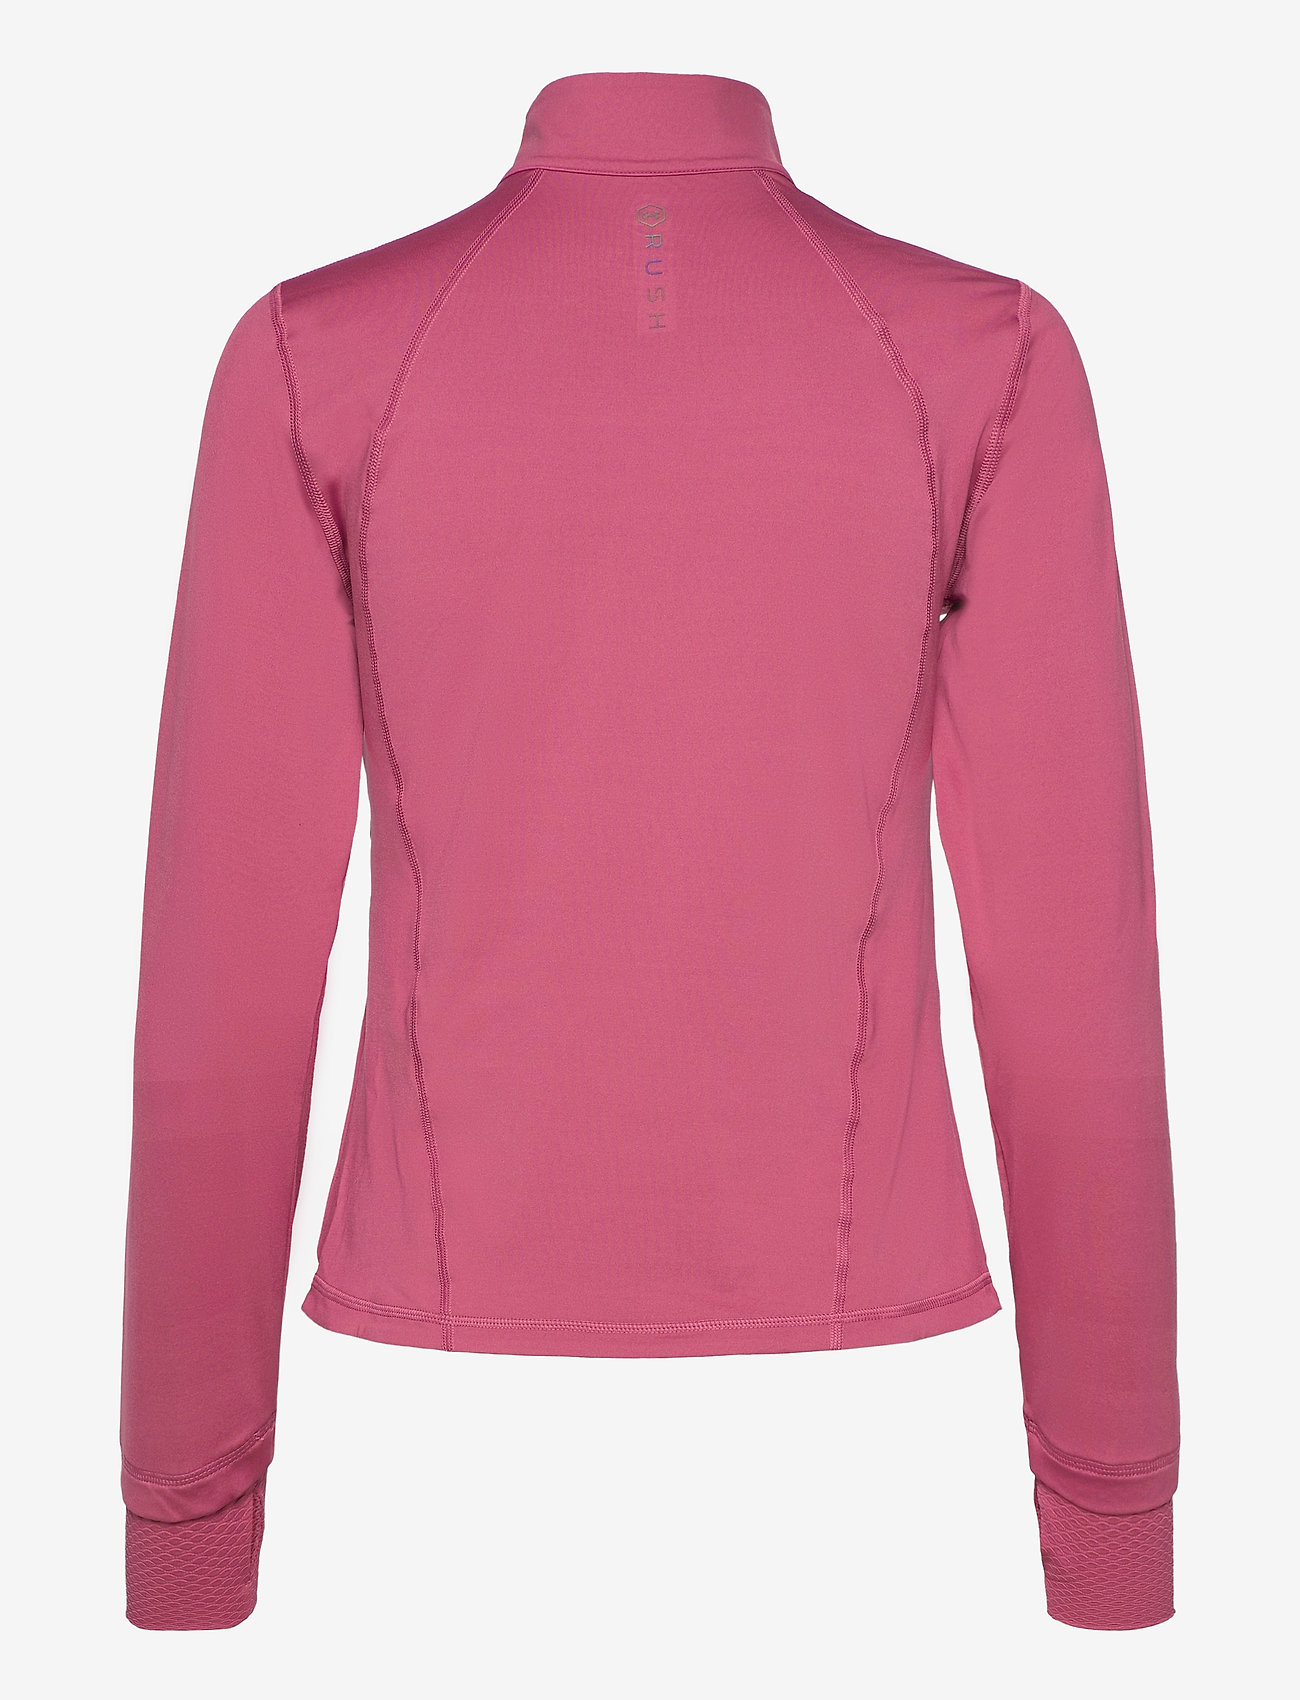 Under Armour - RUSH FZ - training jackets - pink quartz - 1